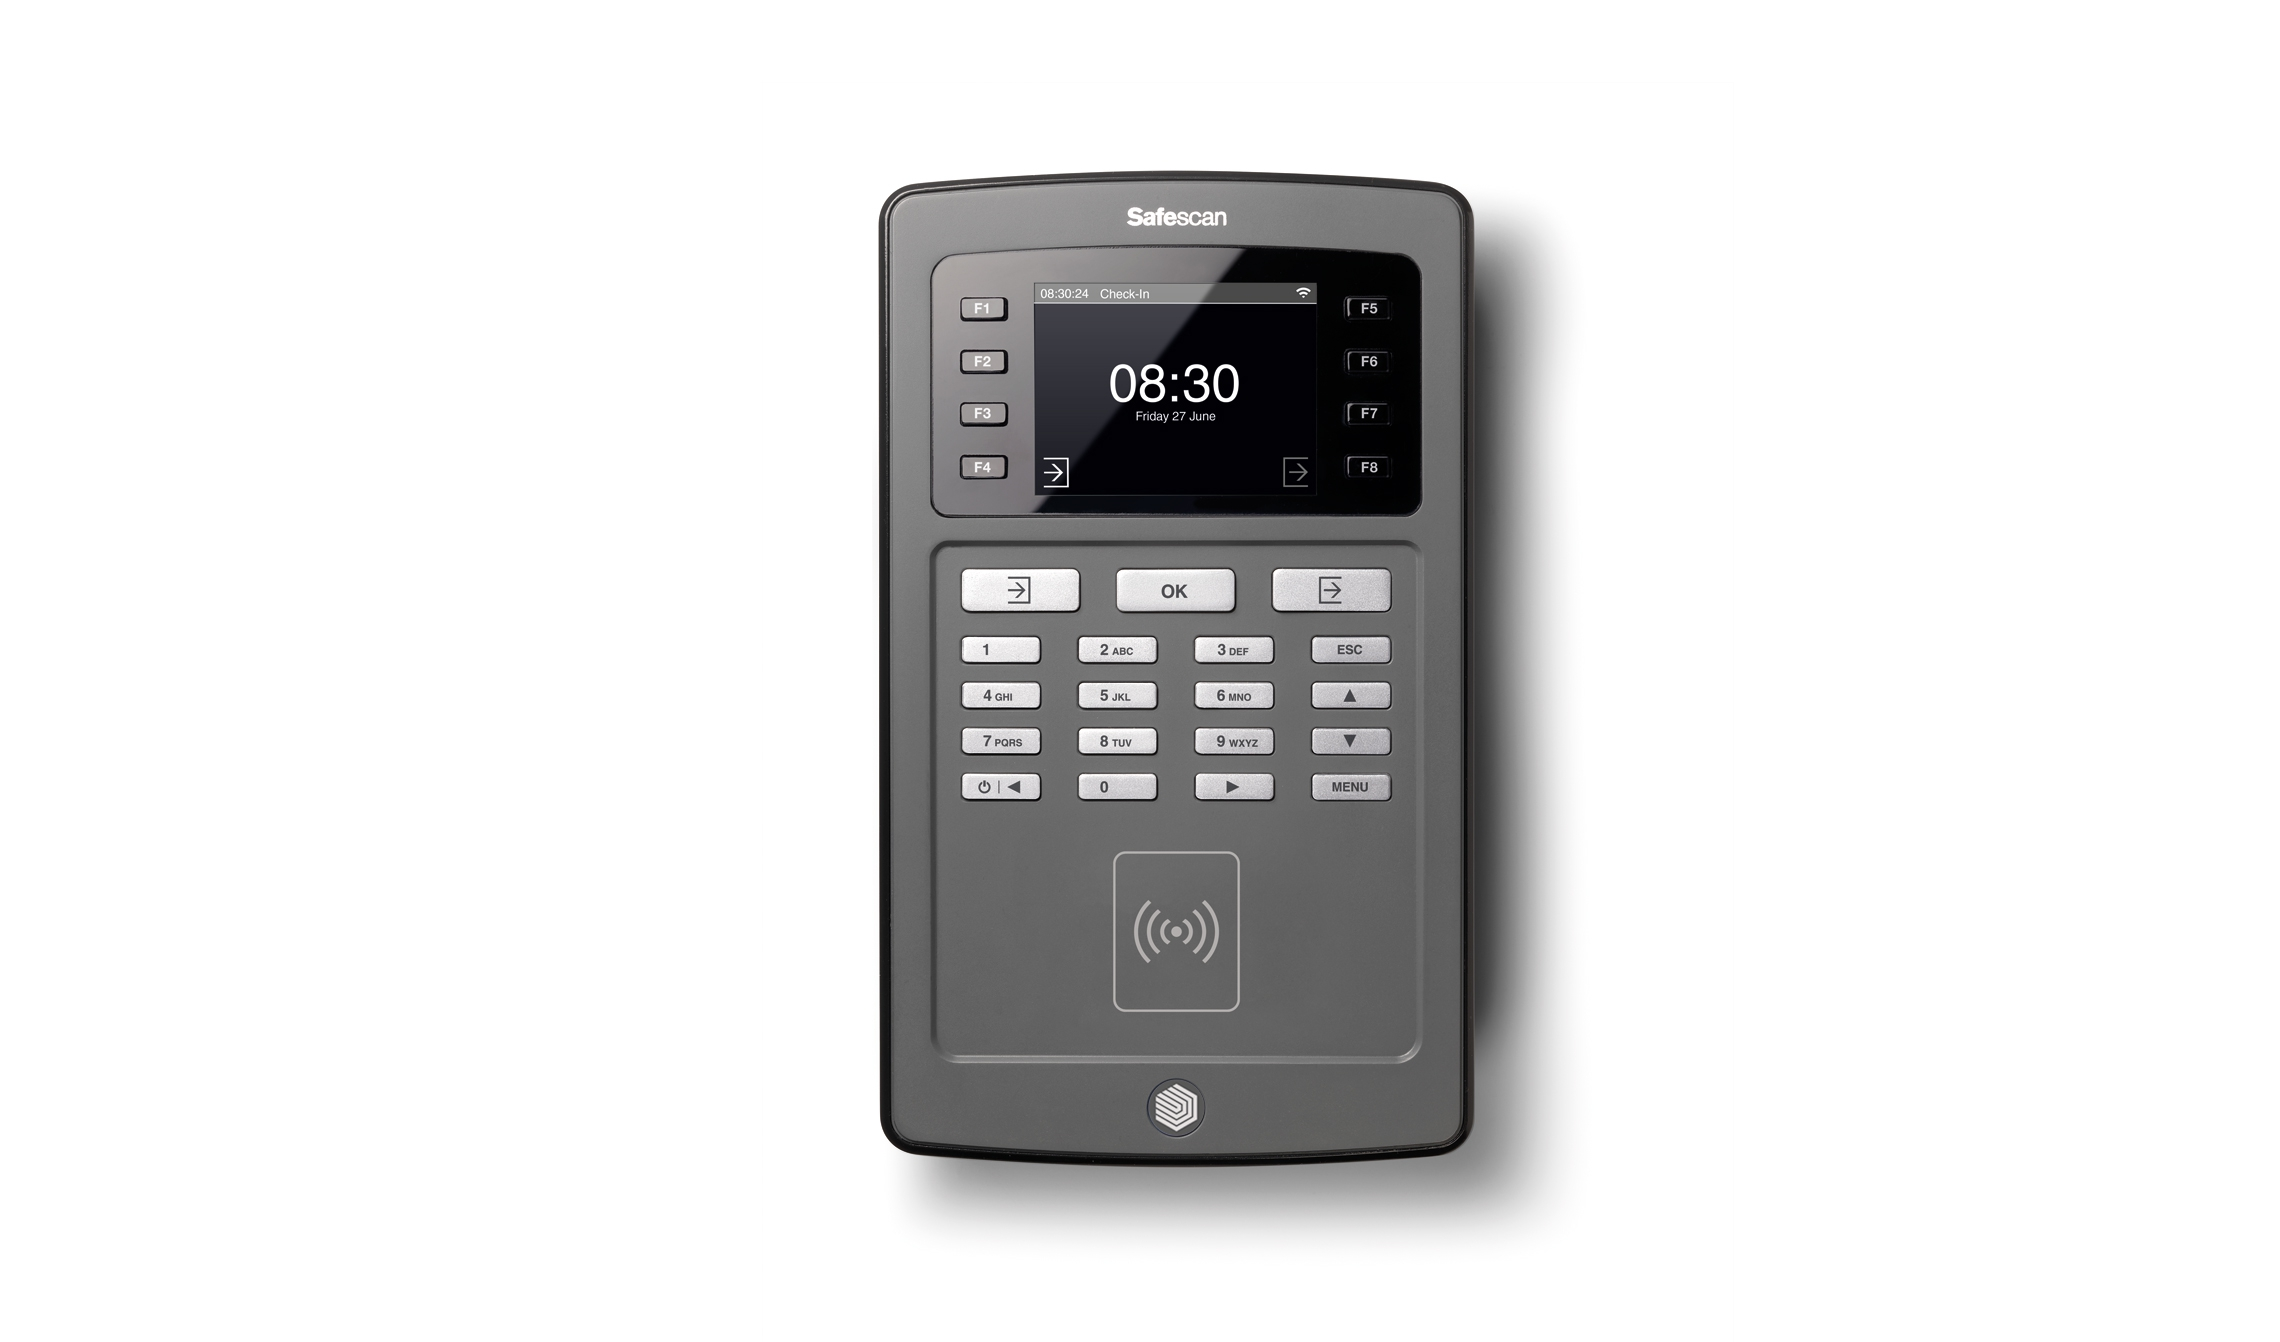 Image for Safescan TA-8015 Clocking In System WiFi Enabled RFID and PCAc Ref 125-0483